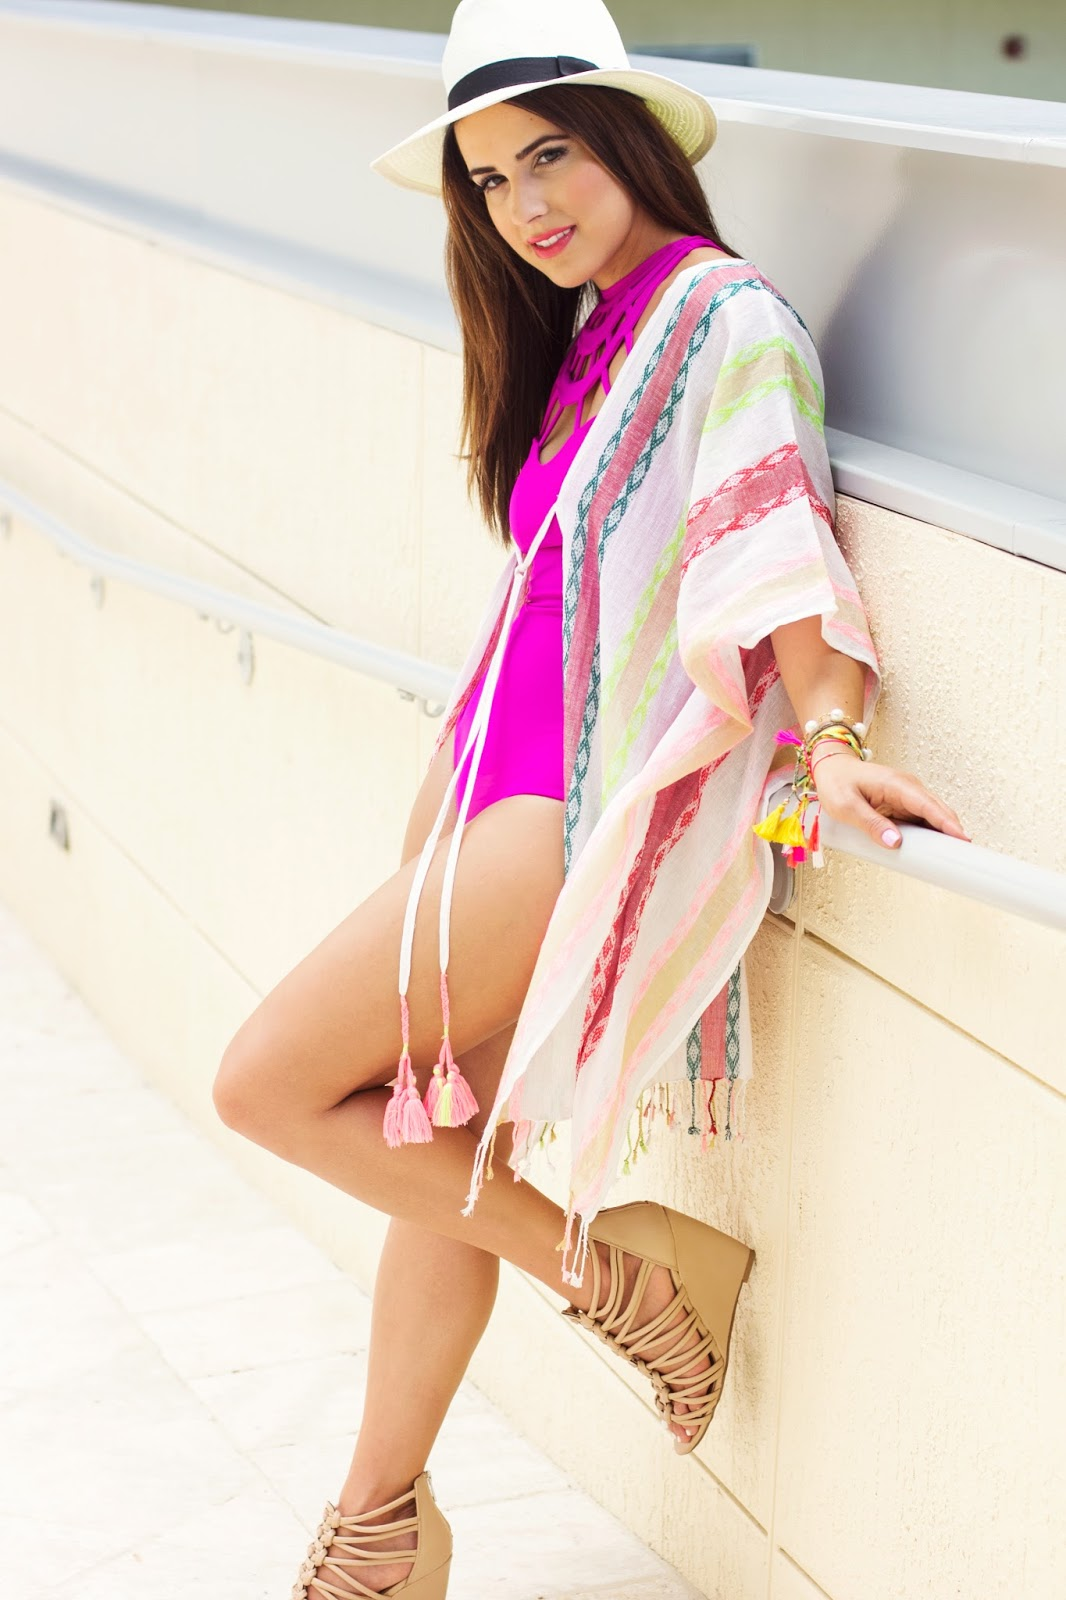 One piece Issa de Mar Swimsuit and Everything But Water Beach Coverup Kimono